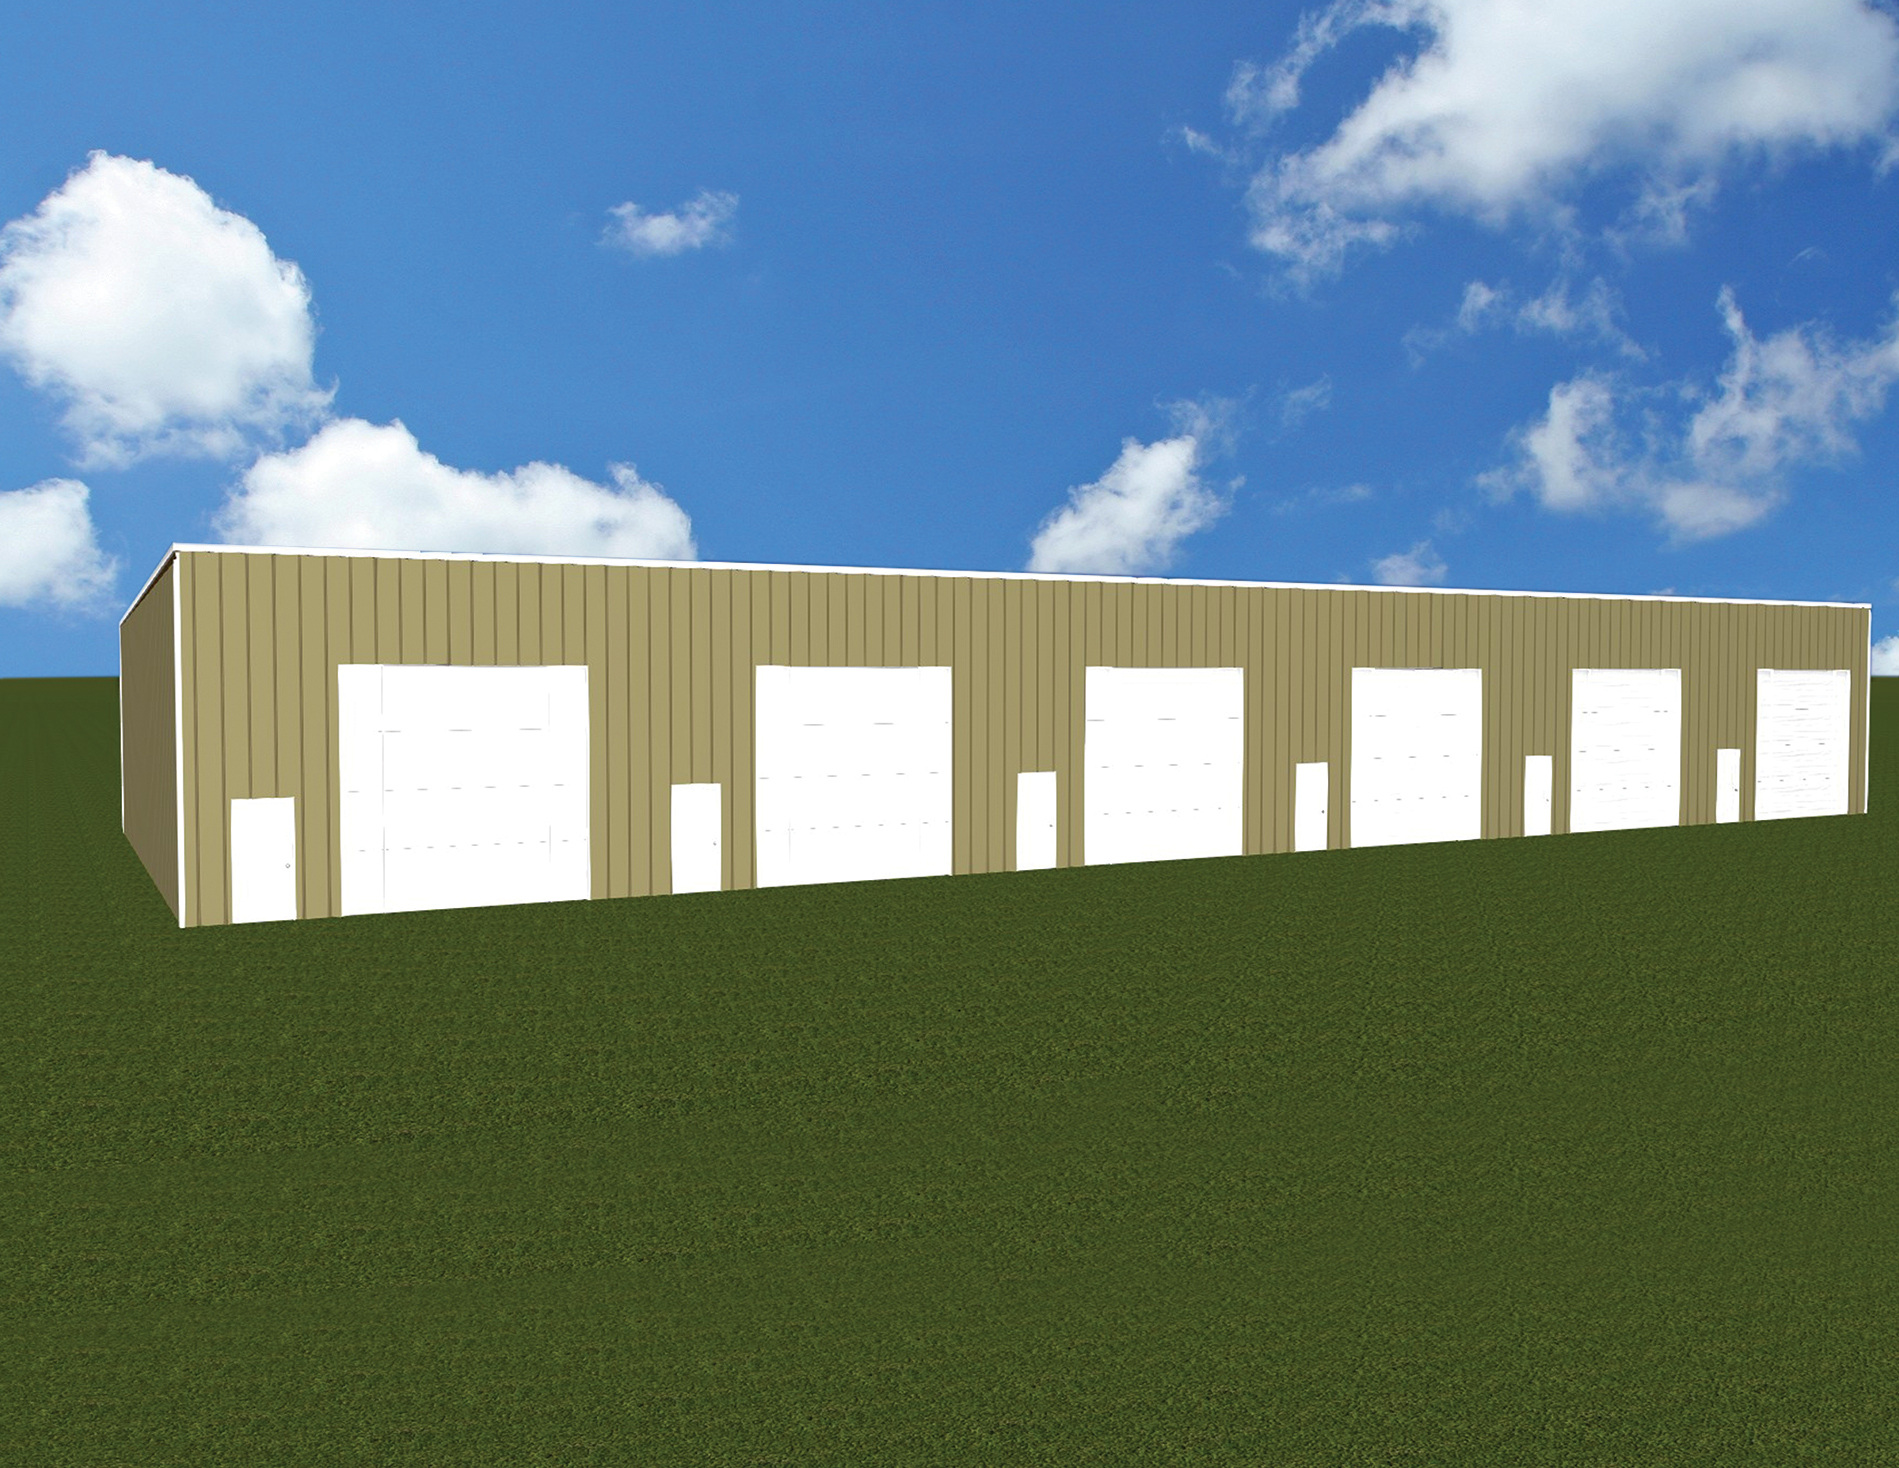 Town Club rd - Building Elevation view